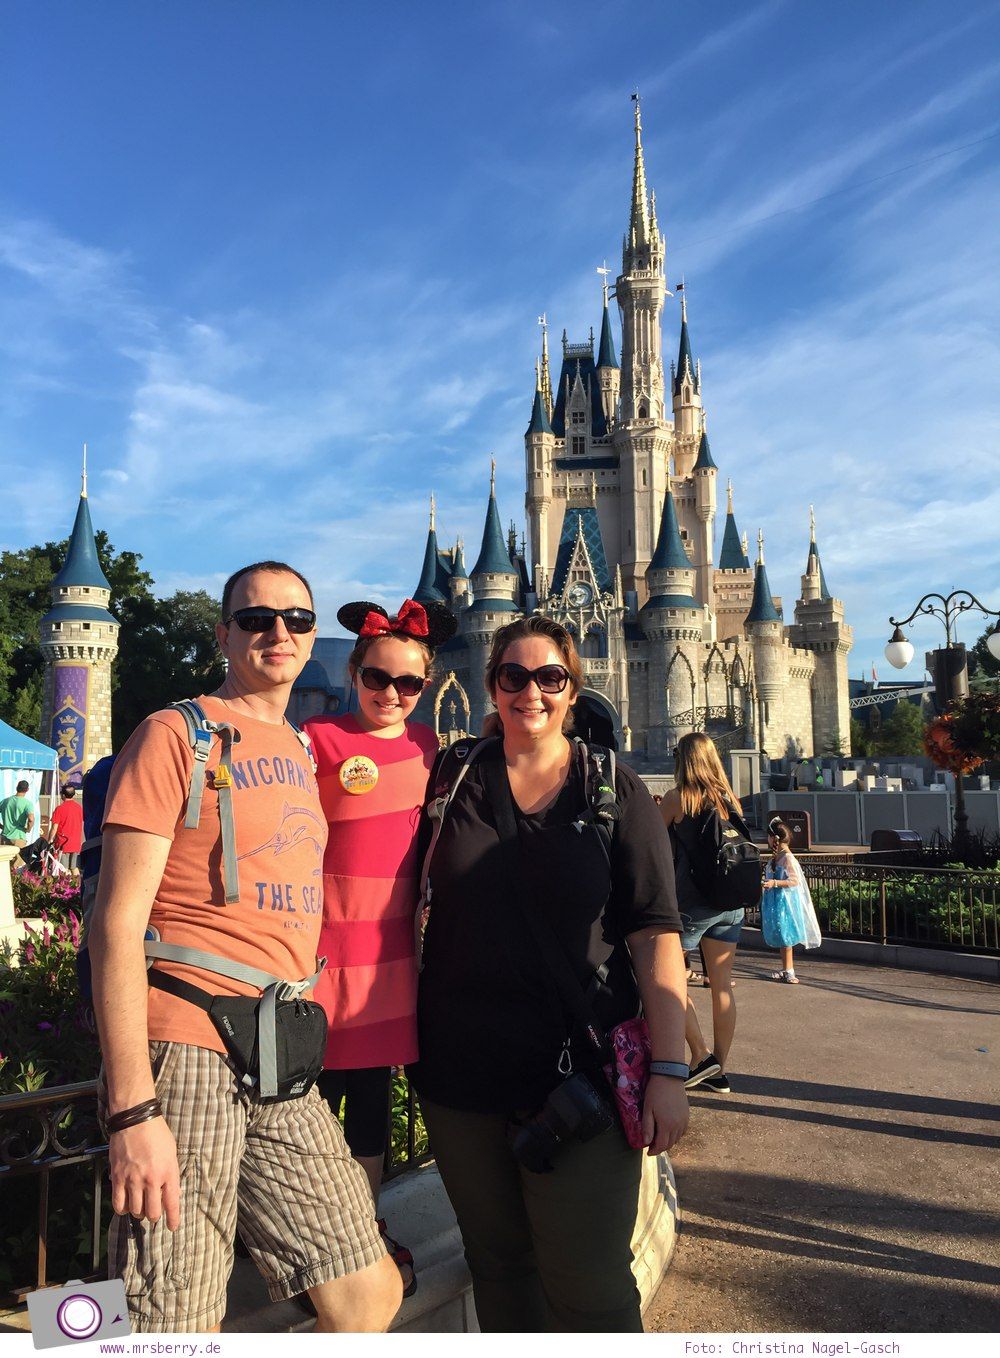 Familienurlaub in den USA - Florida Rundreise: Disney World in Orlando - Magic Kingdom